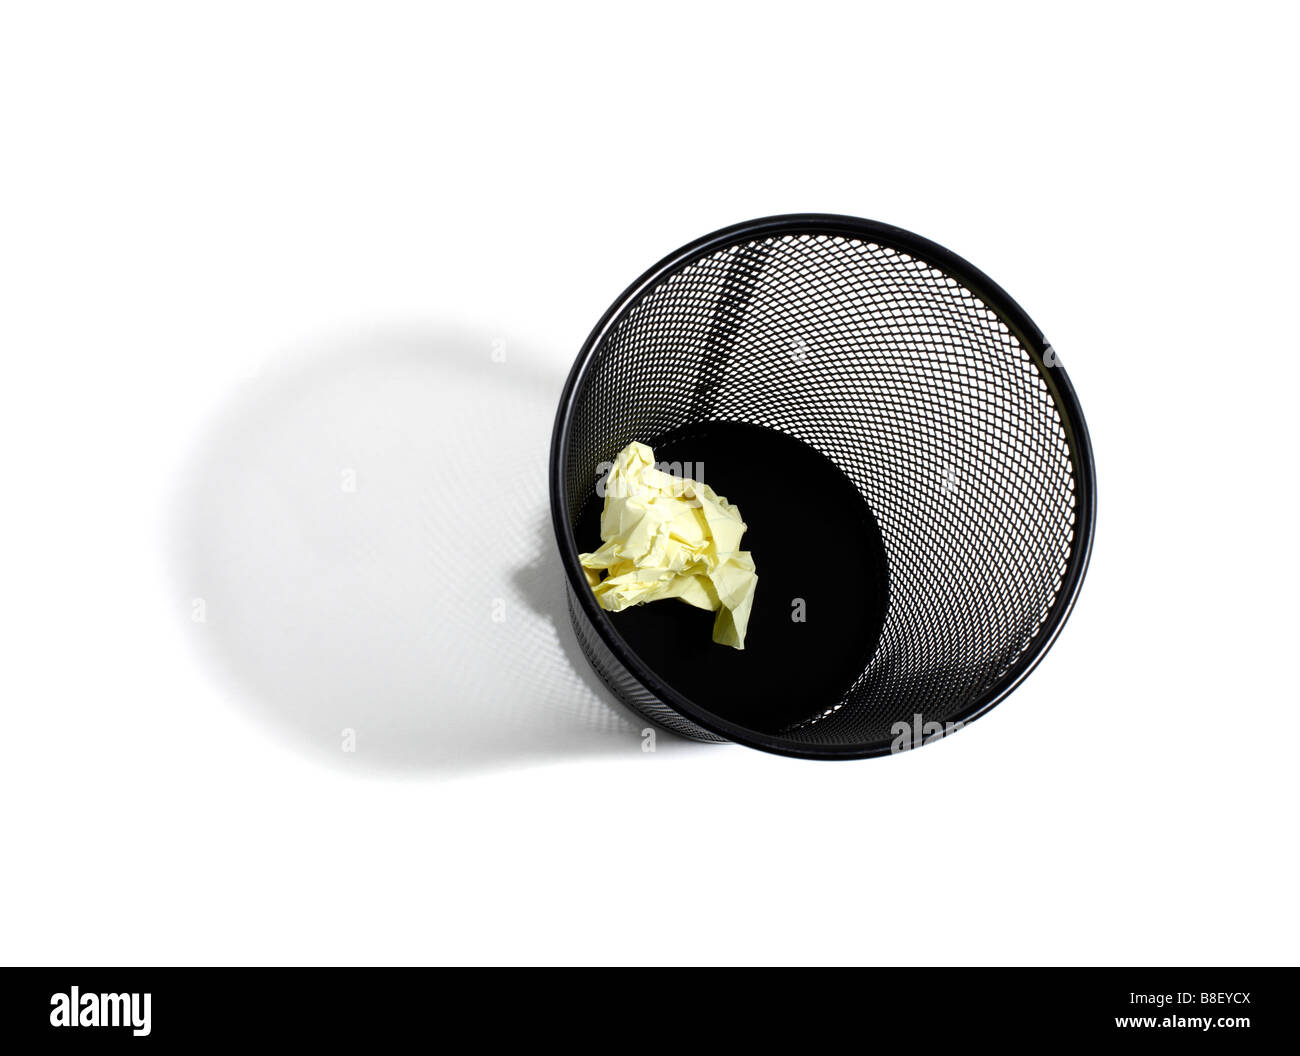 Wastebasket with one wad of paper - Stock Image